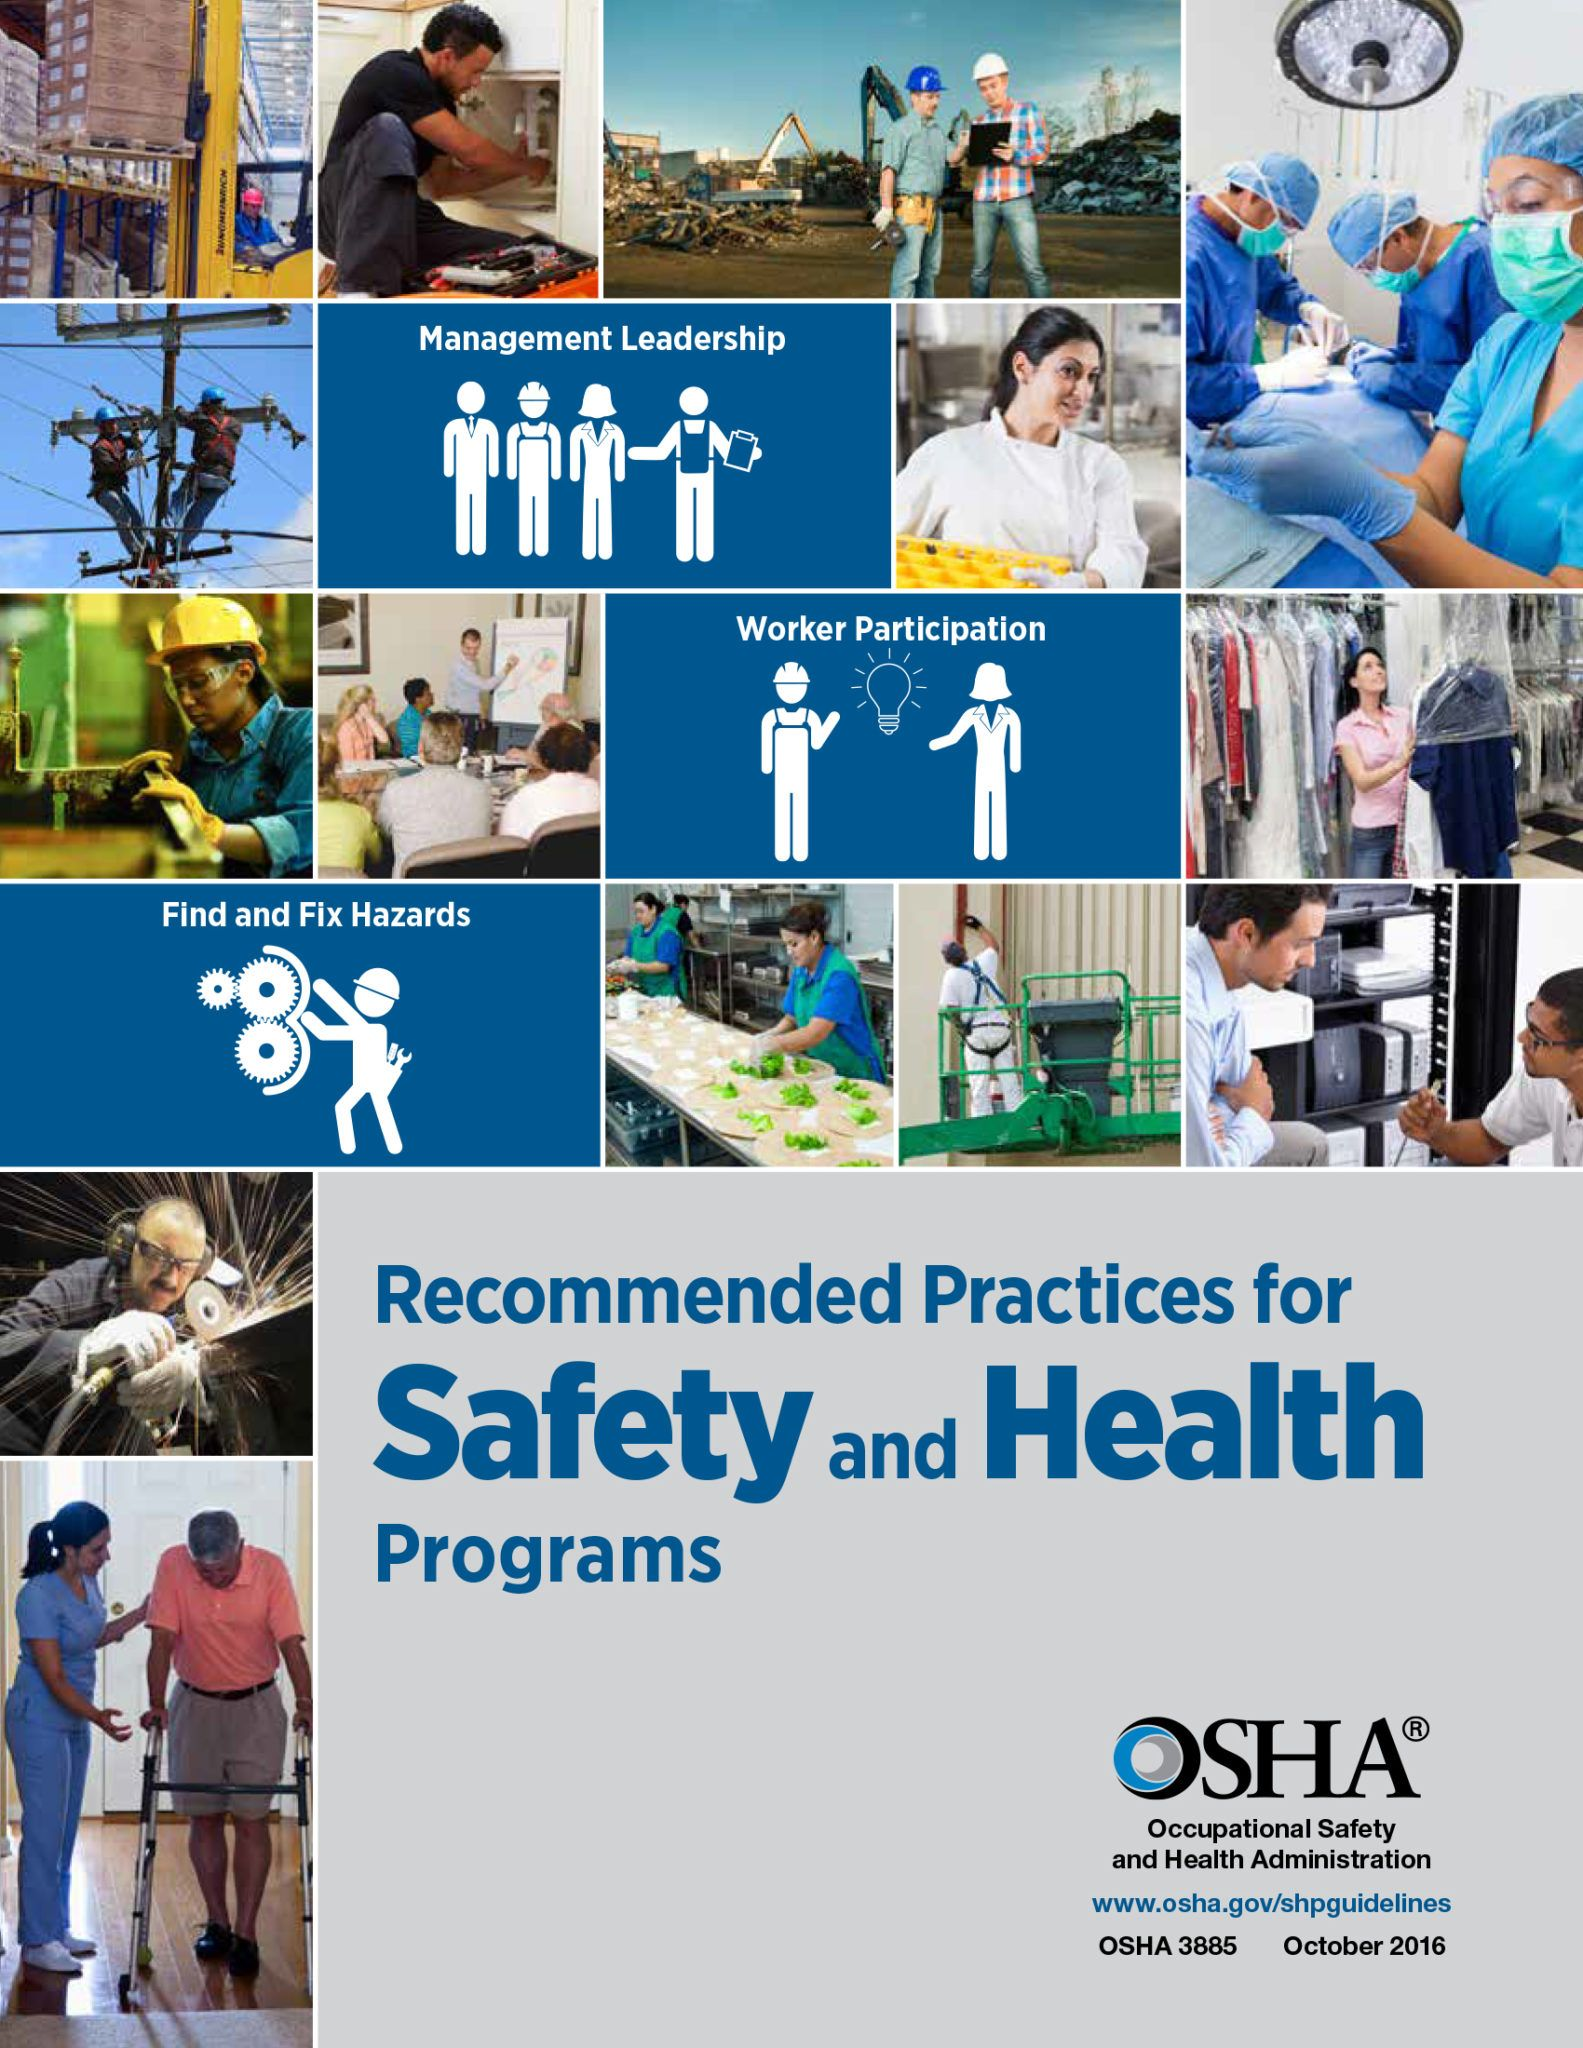 OSHA Safety Training Leads to Less Injuries and Employer